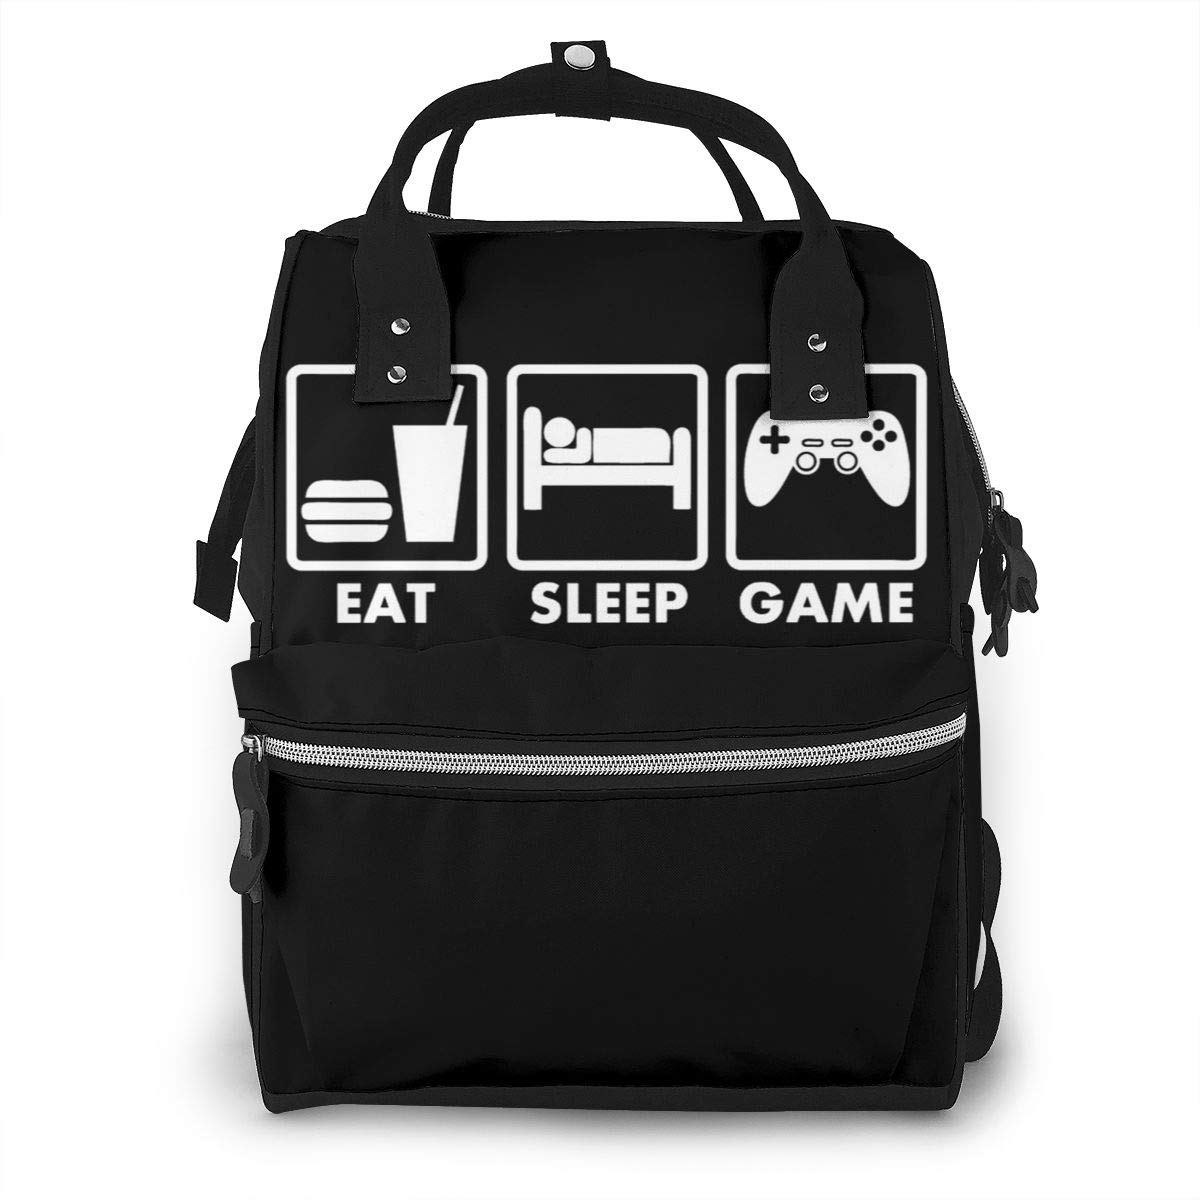 Eat Sleep Game Video Games Diaper Bag Multi-Function Waterproof Travel Backpack Nappy Bags for Baby Care Mummy Backpack